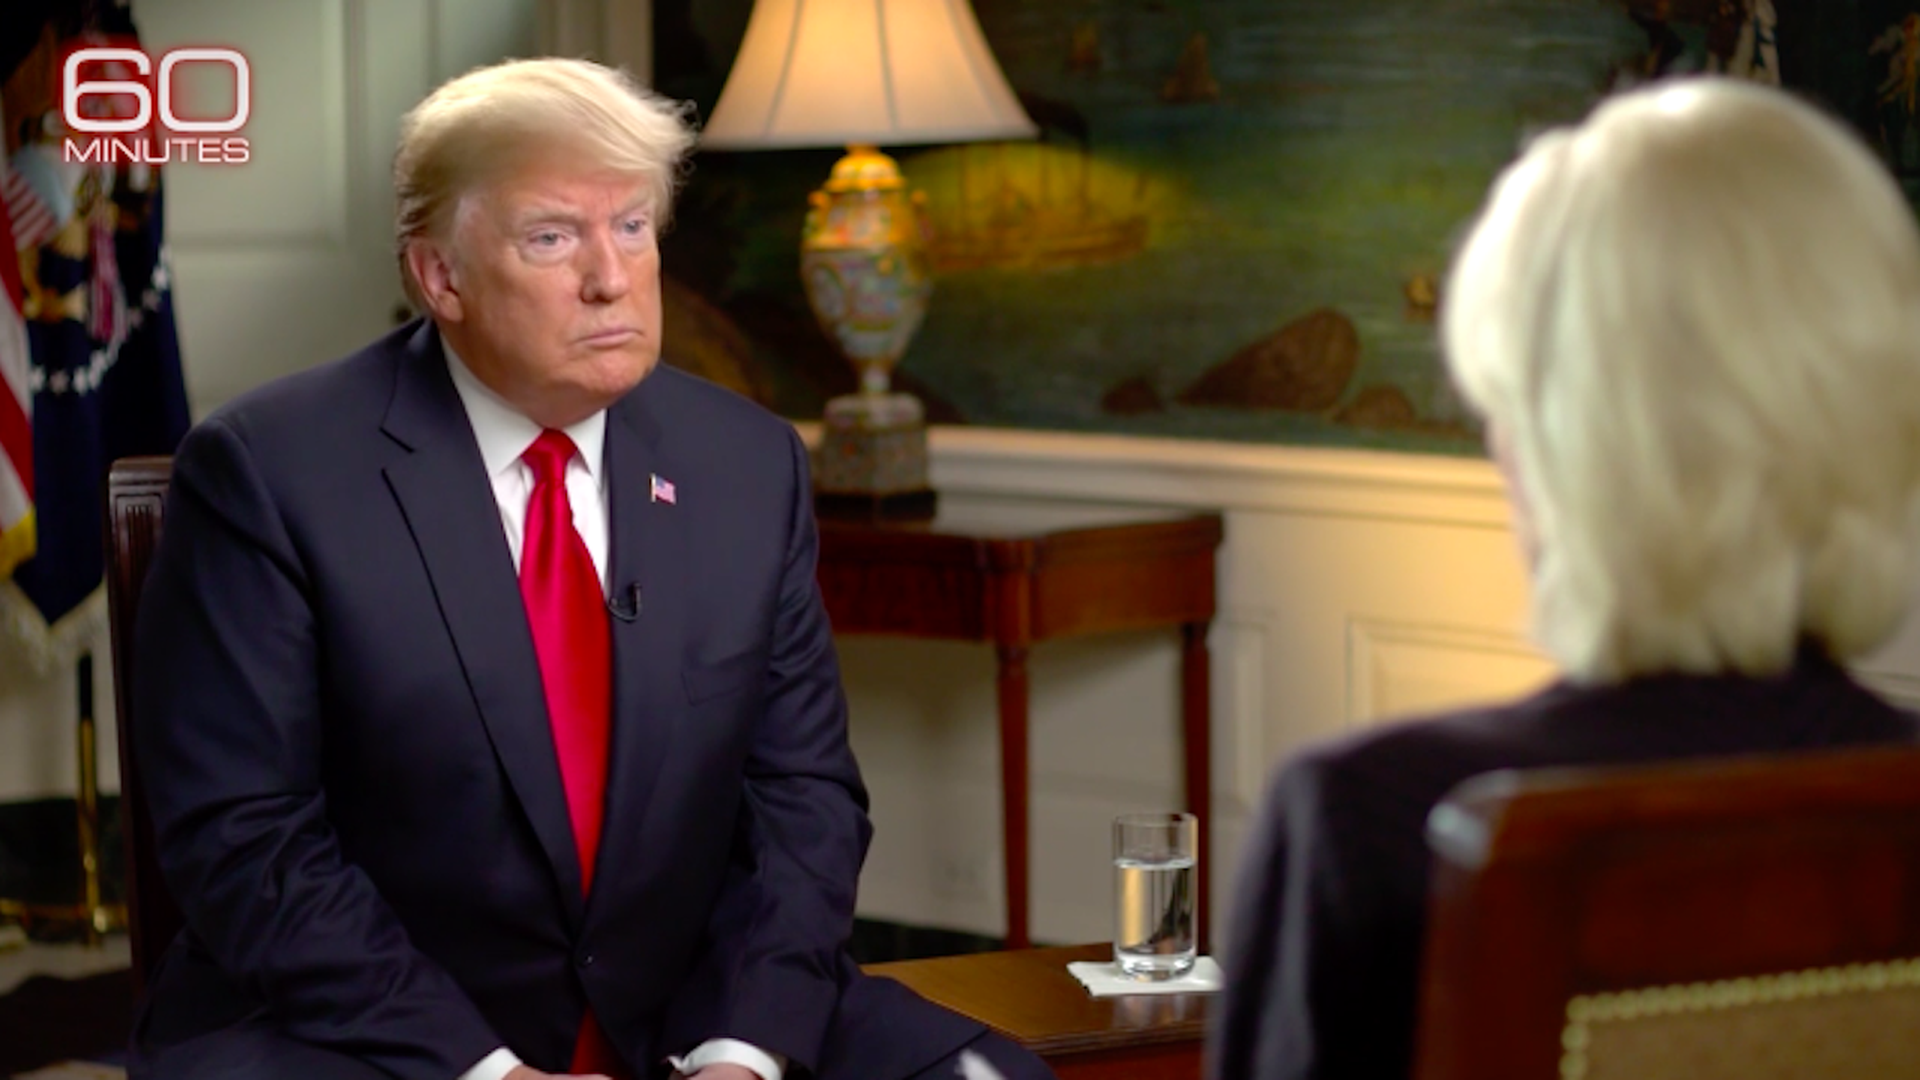 Donald Trump on 60 Minutes.